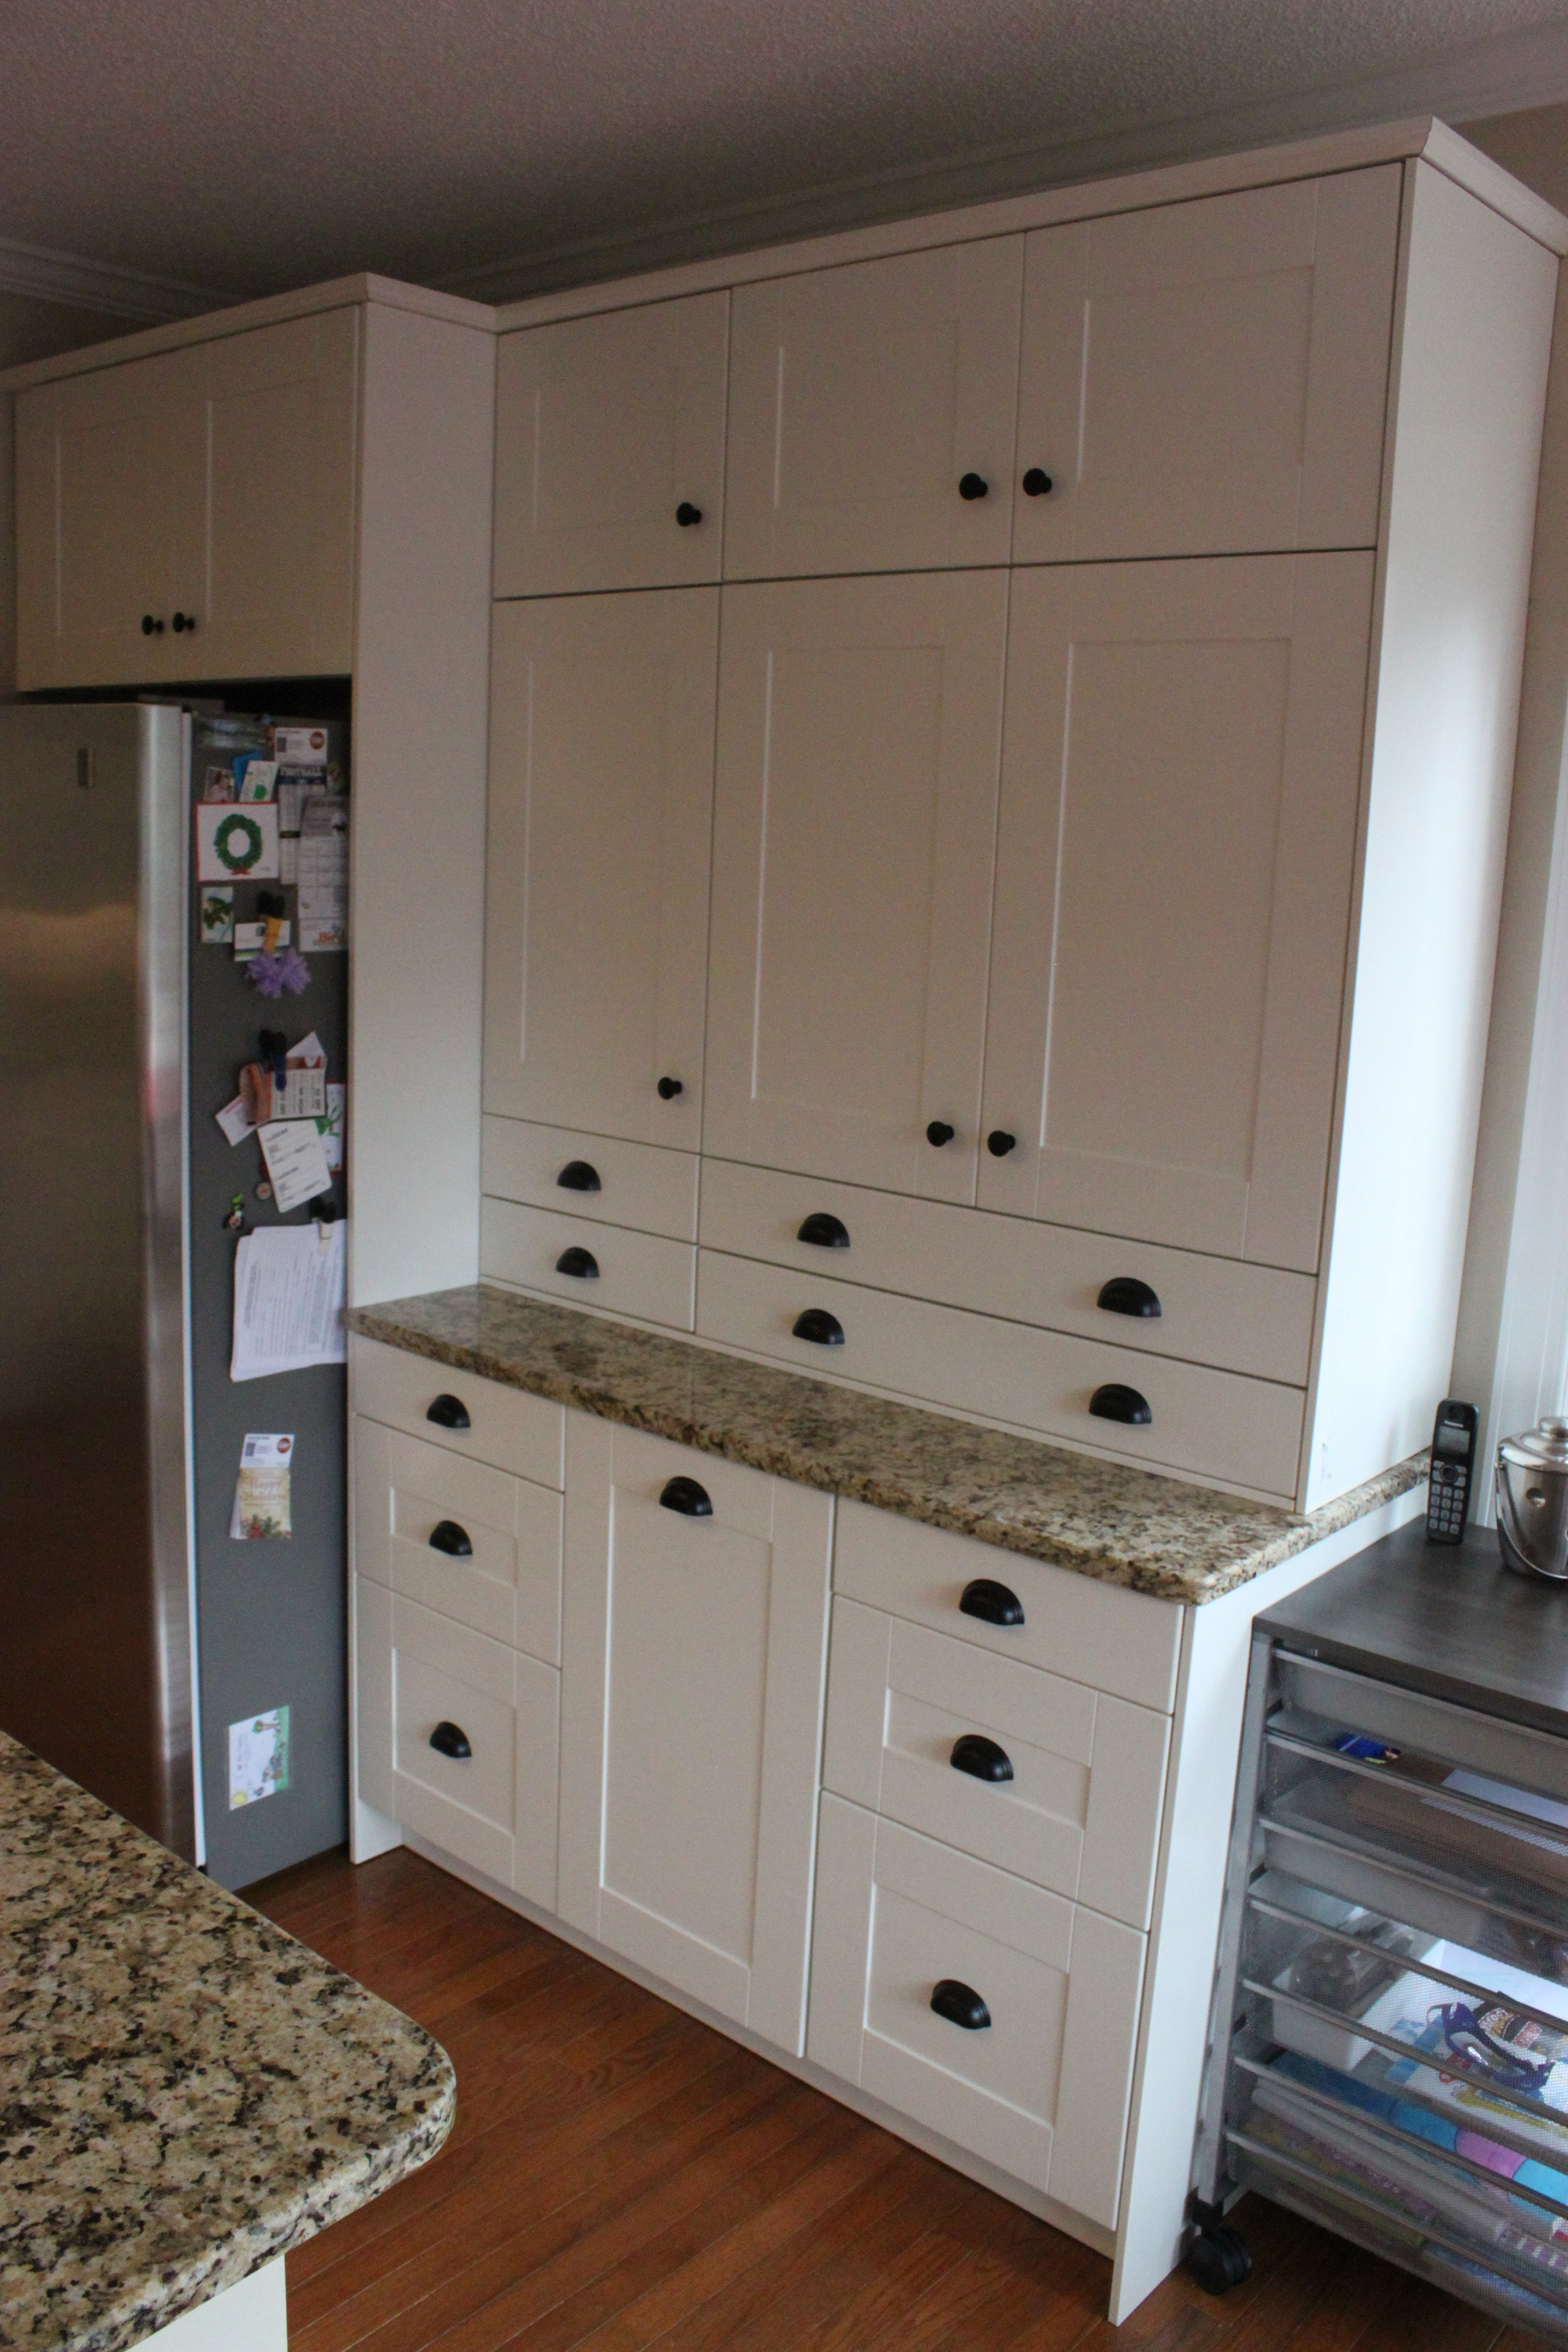 How Much To Remodel Kitchen Ikea